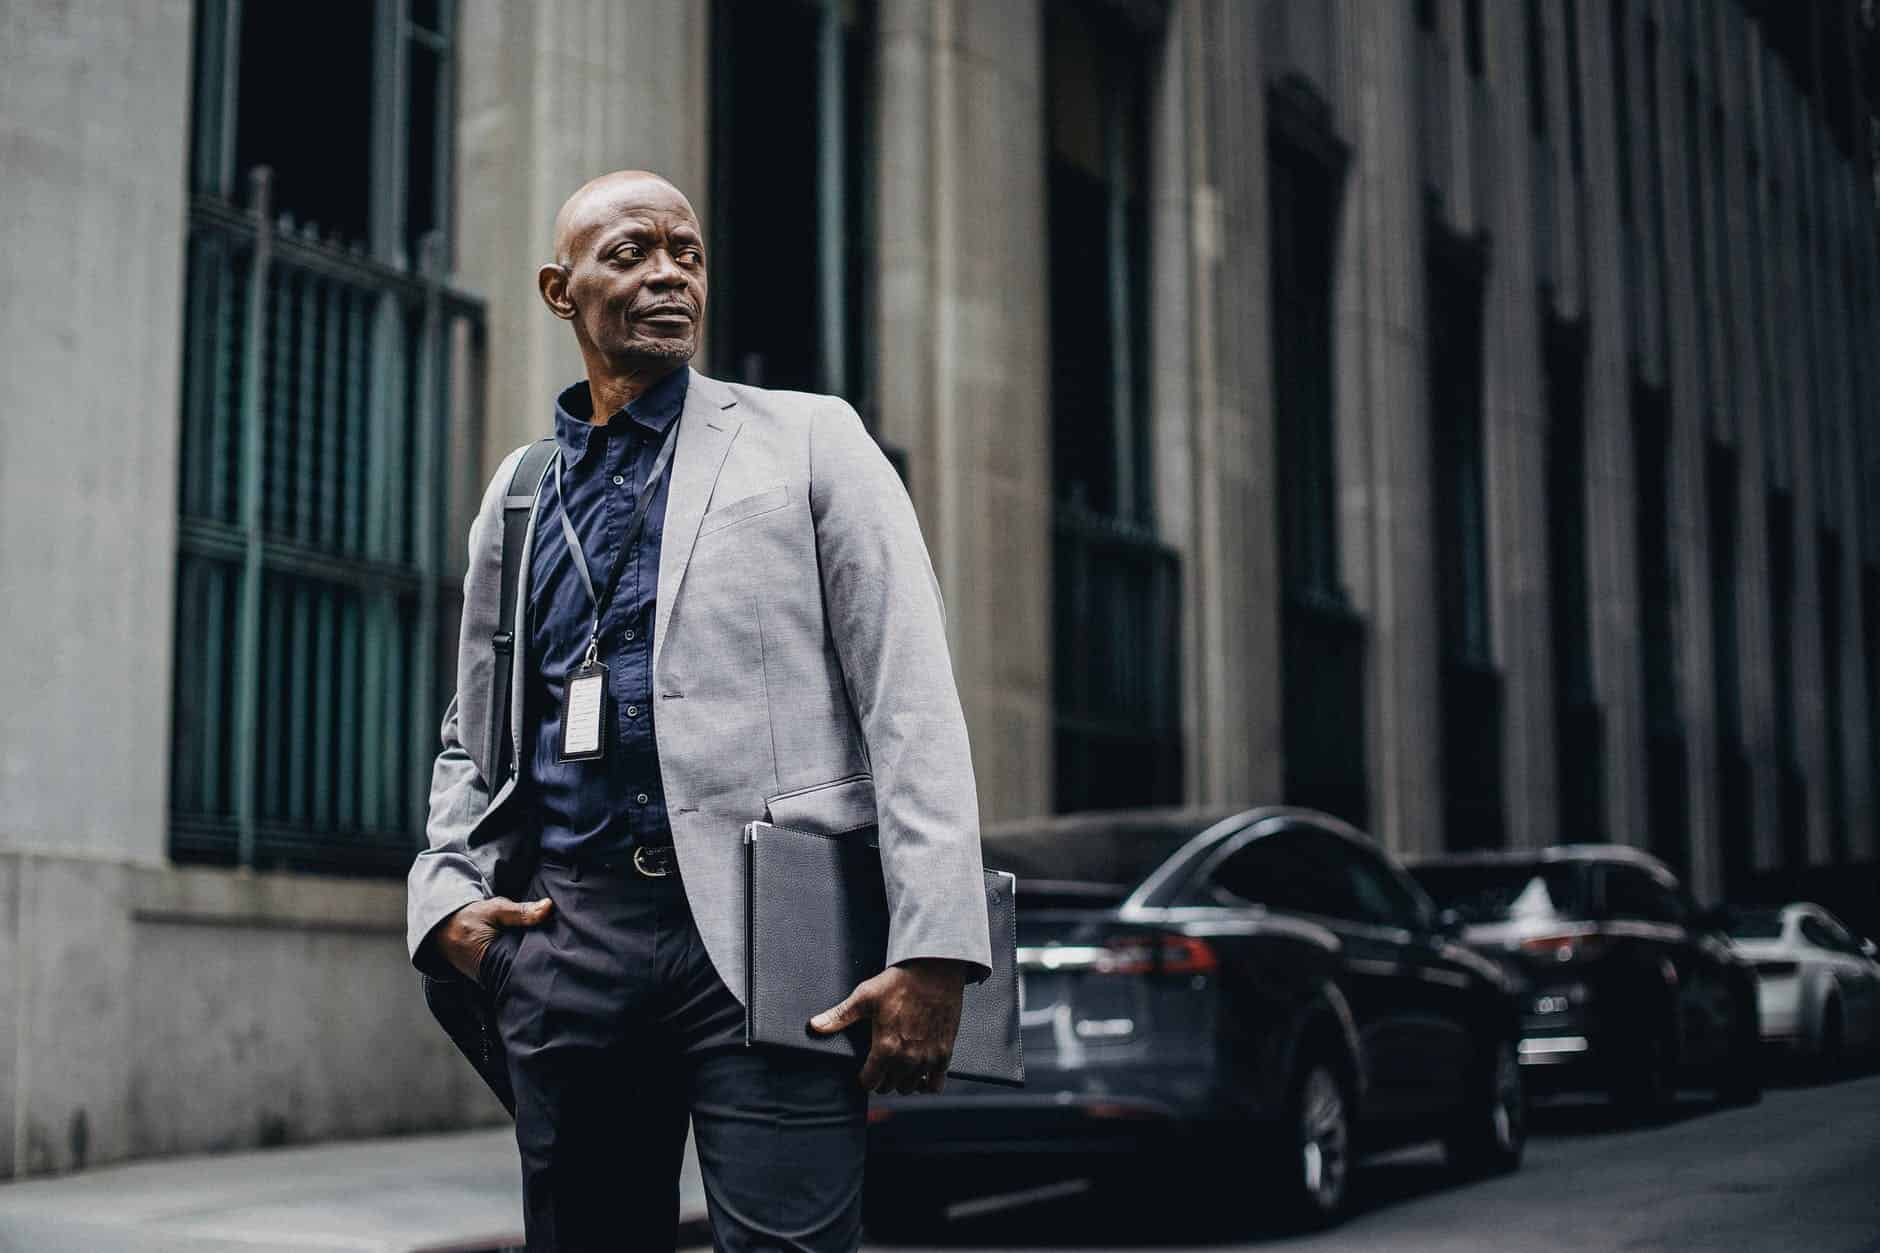 respectable black businessman standing on street The Key to Effective Leadership